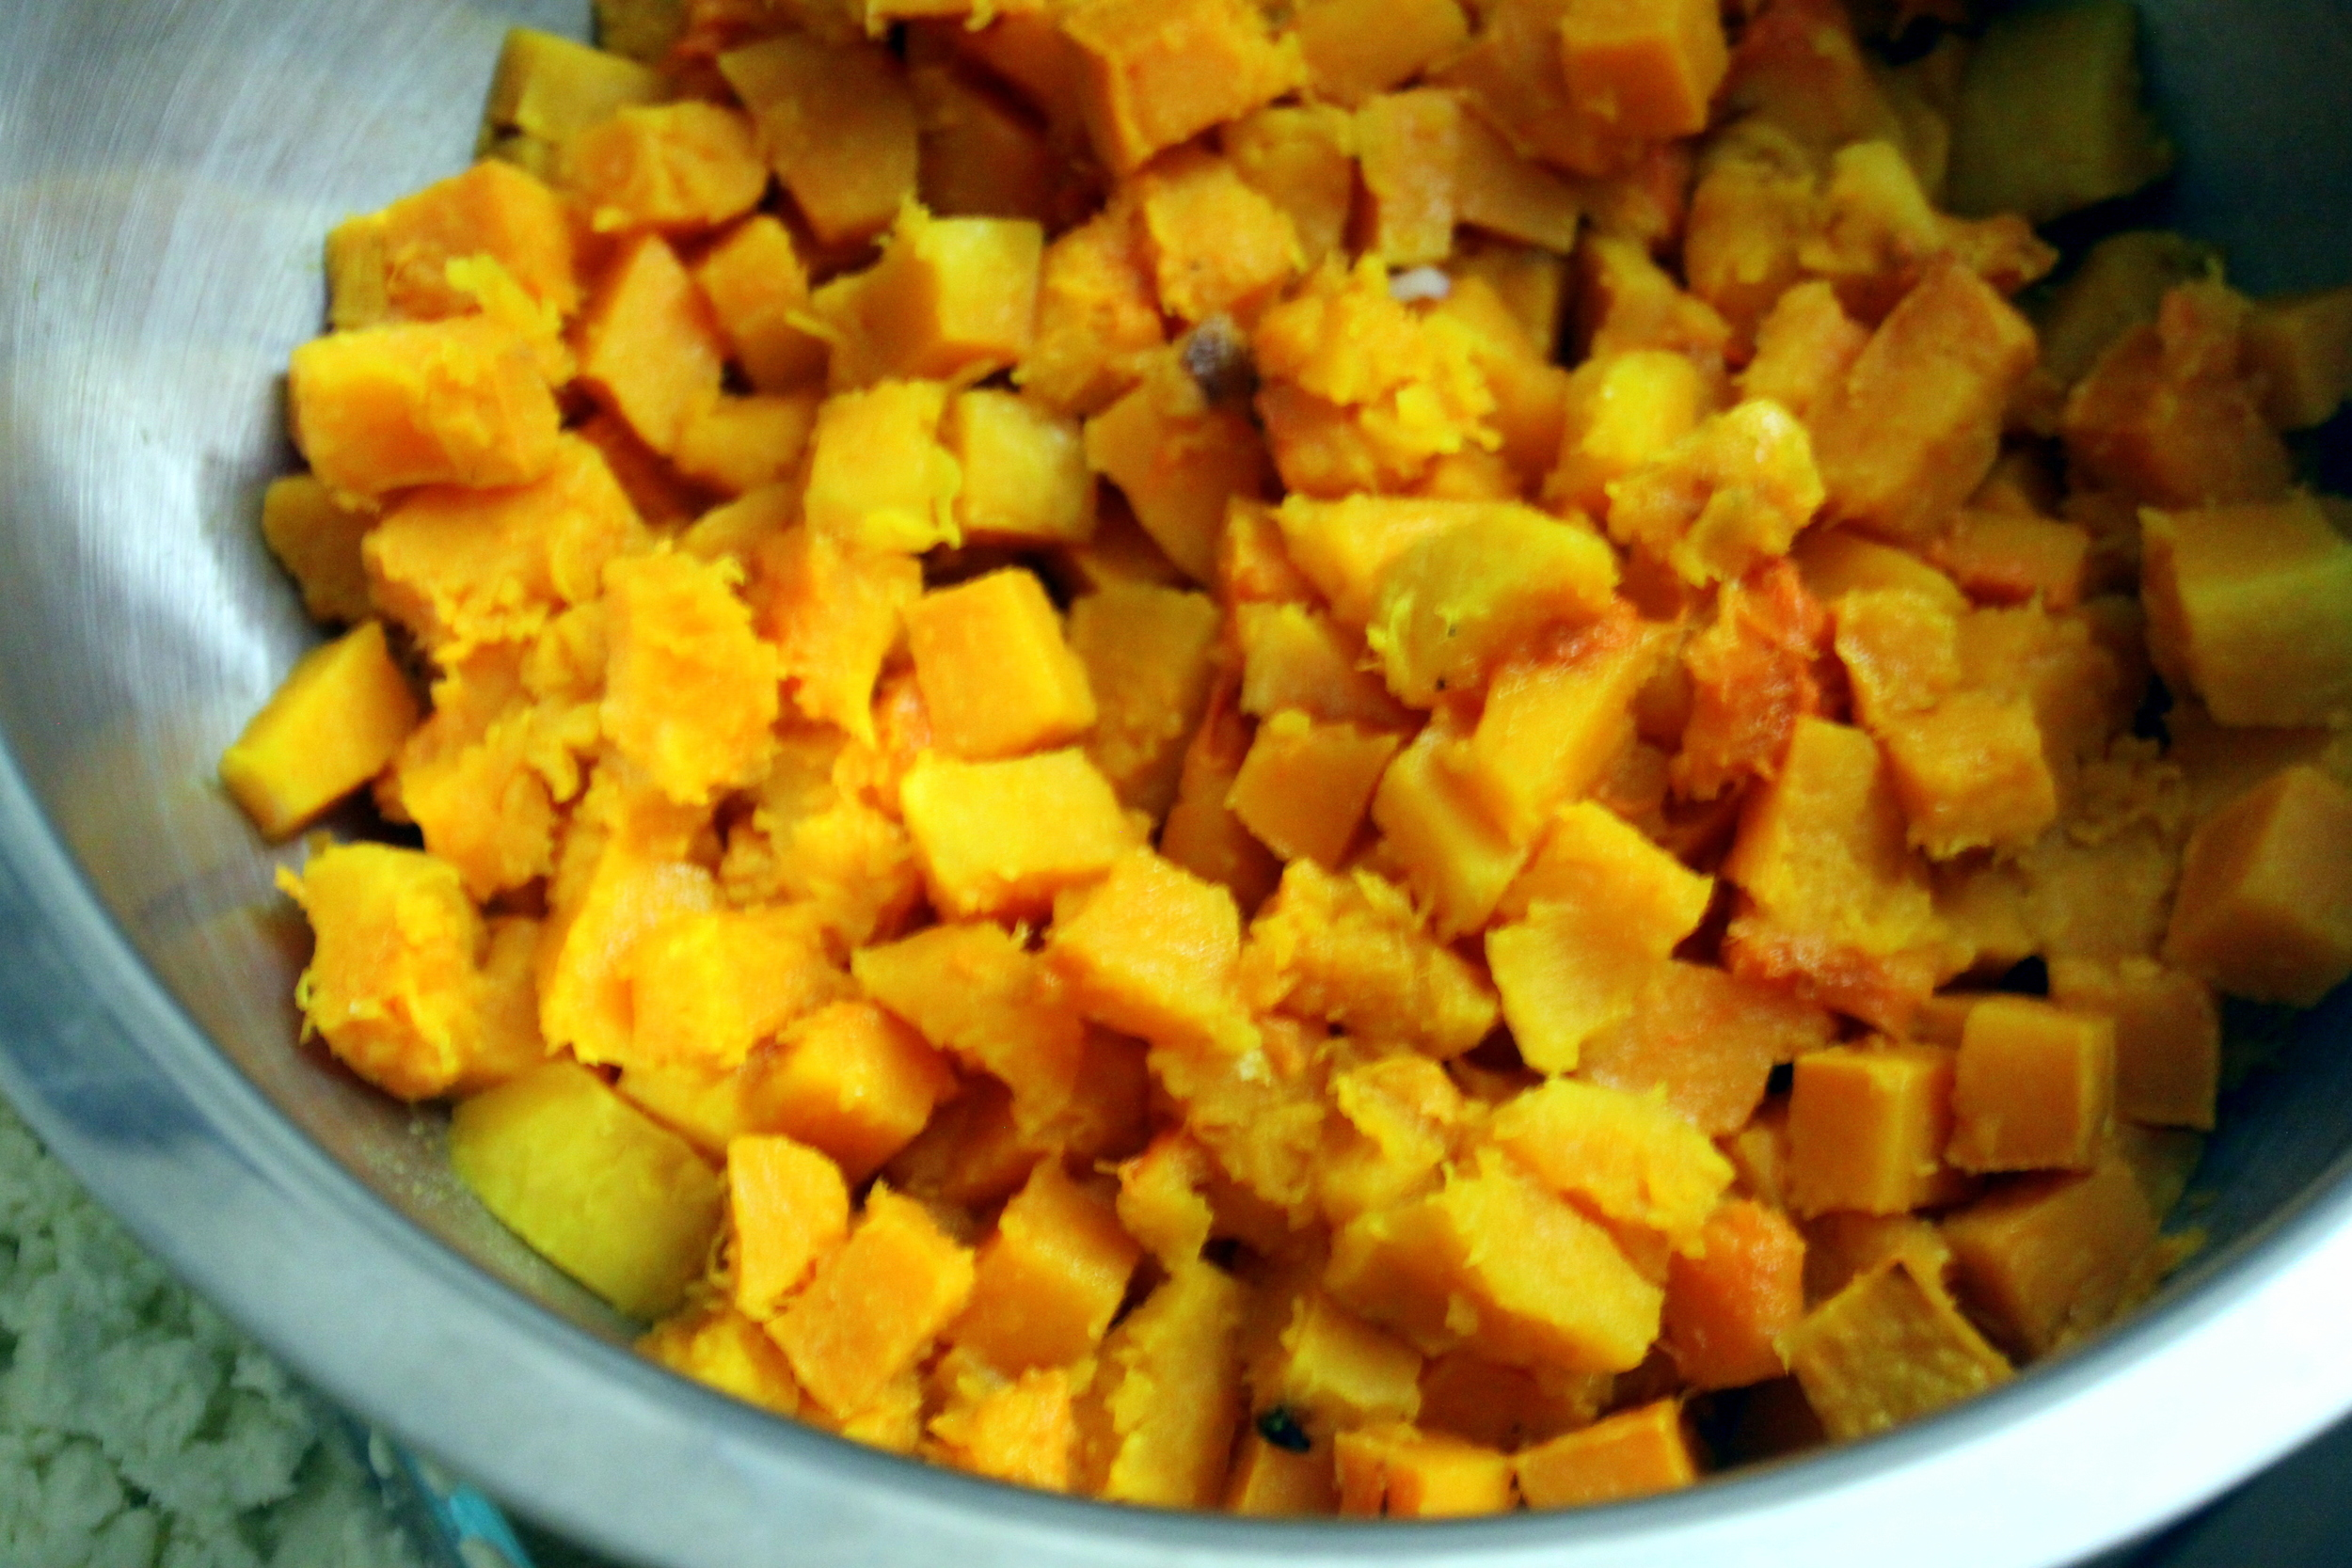 cubed winter squash